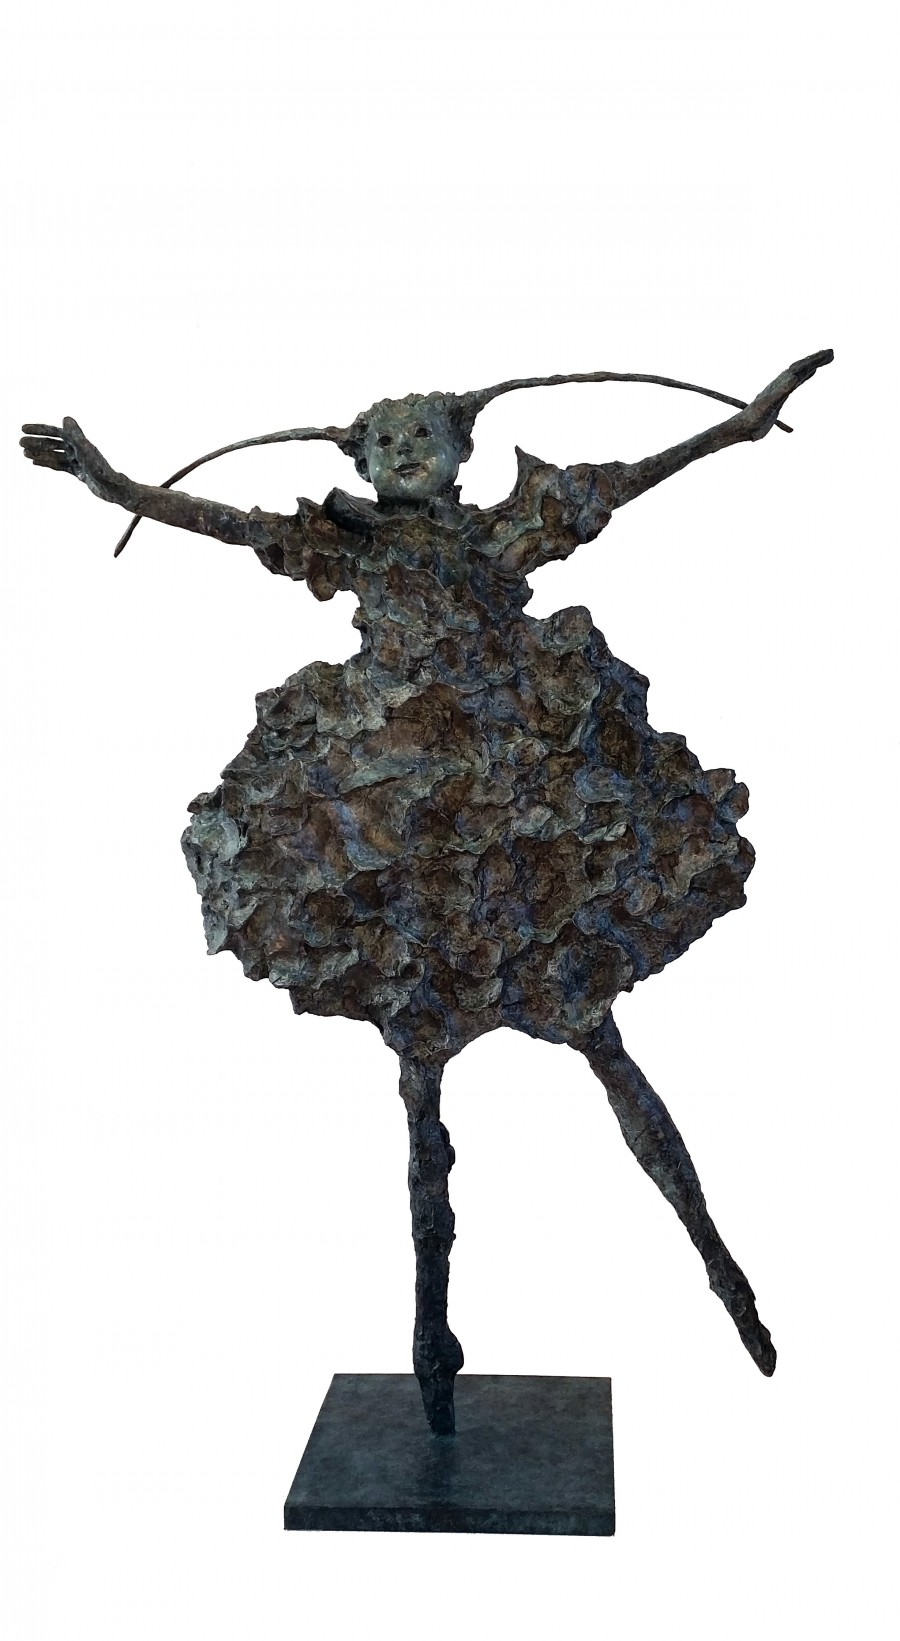 La pointe -  sculpture bronze H. 137x100 cm  - KERBAOL